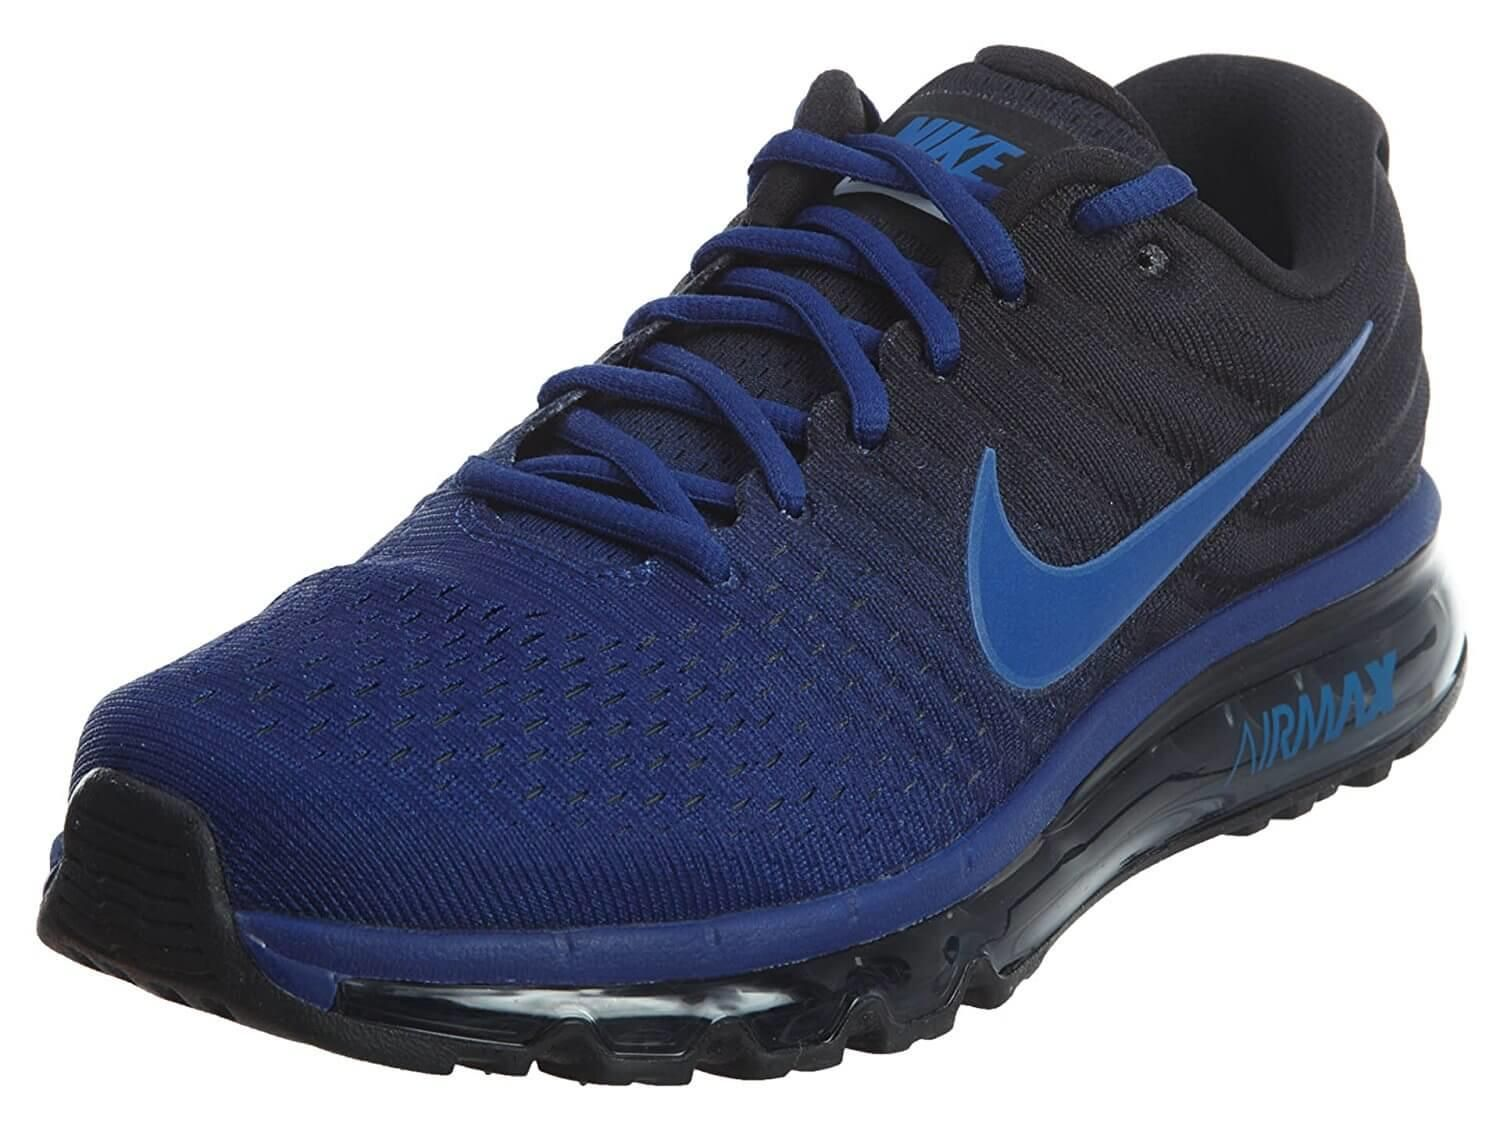 competitive price d342b 4cefa Nike Shoes Amazon Womens - 30 Best Nike Sneakers to Buy in ...